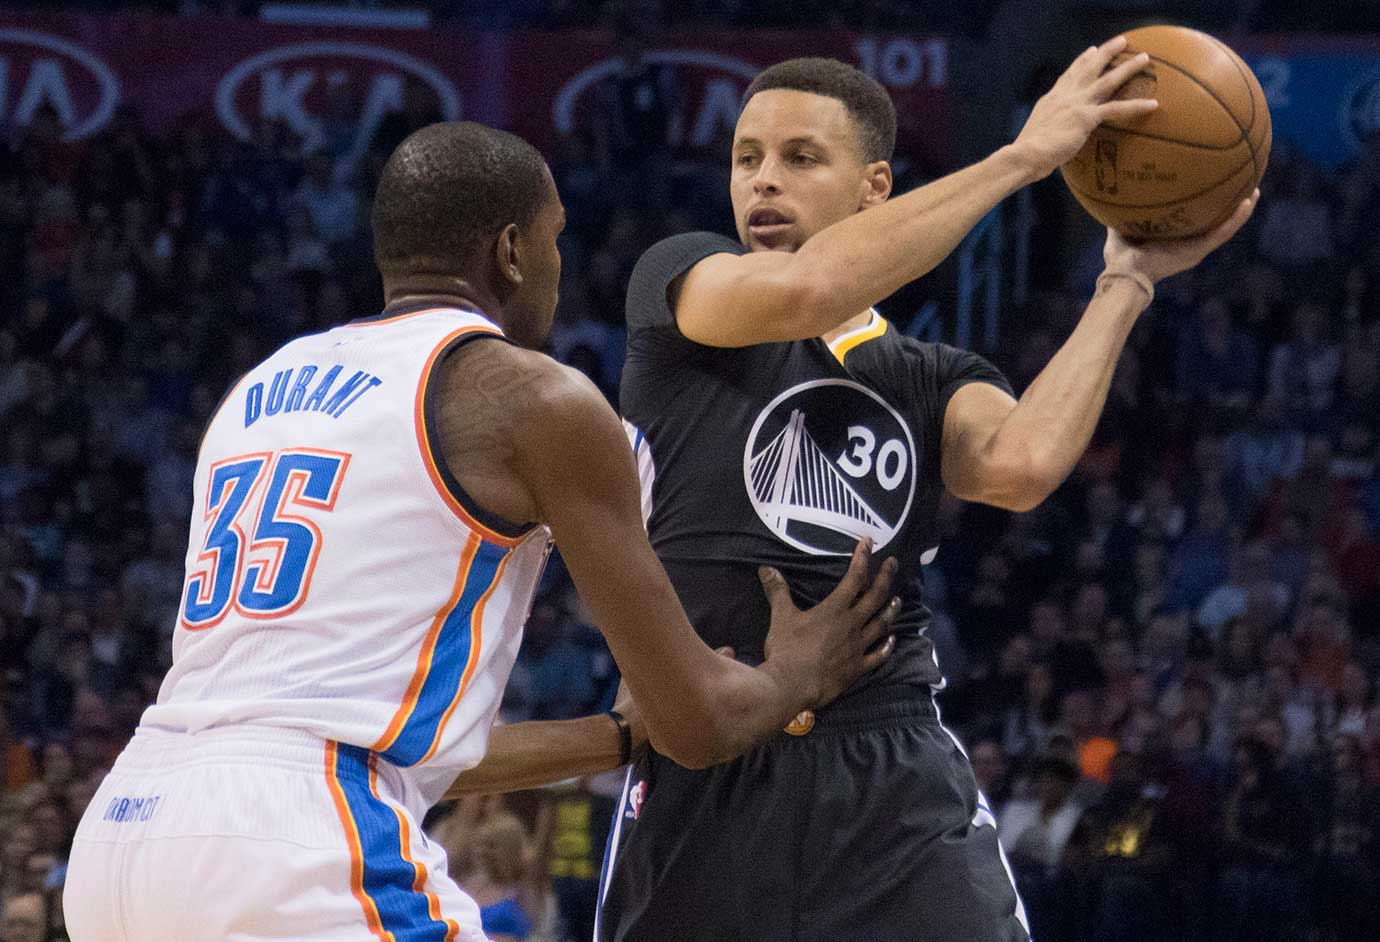 Stephen Curry looks for a play as Kevin Durant applies pressure. Durant fouled out of the game.